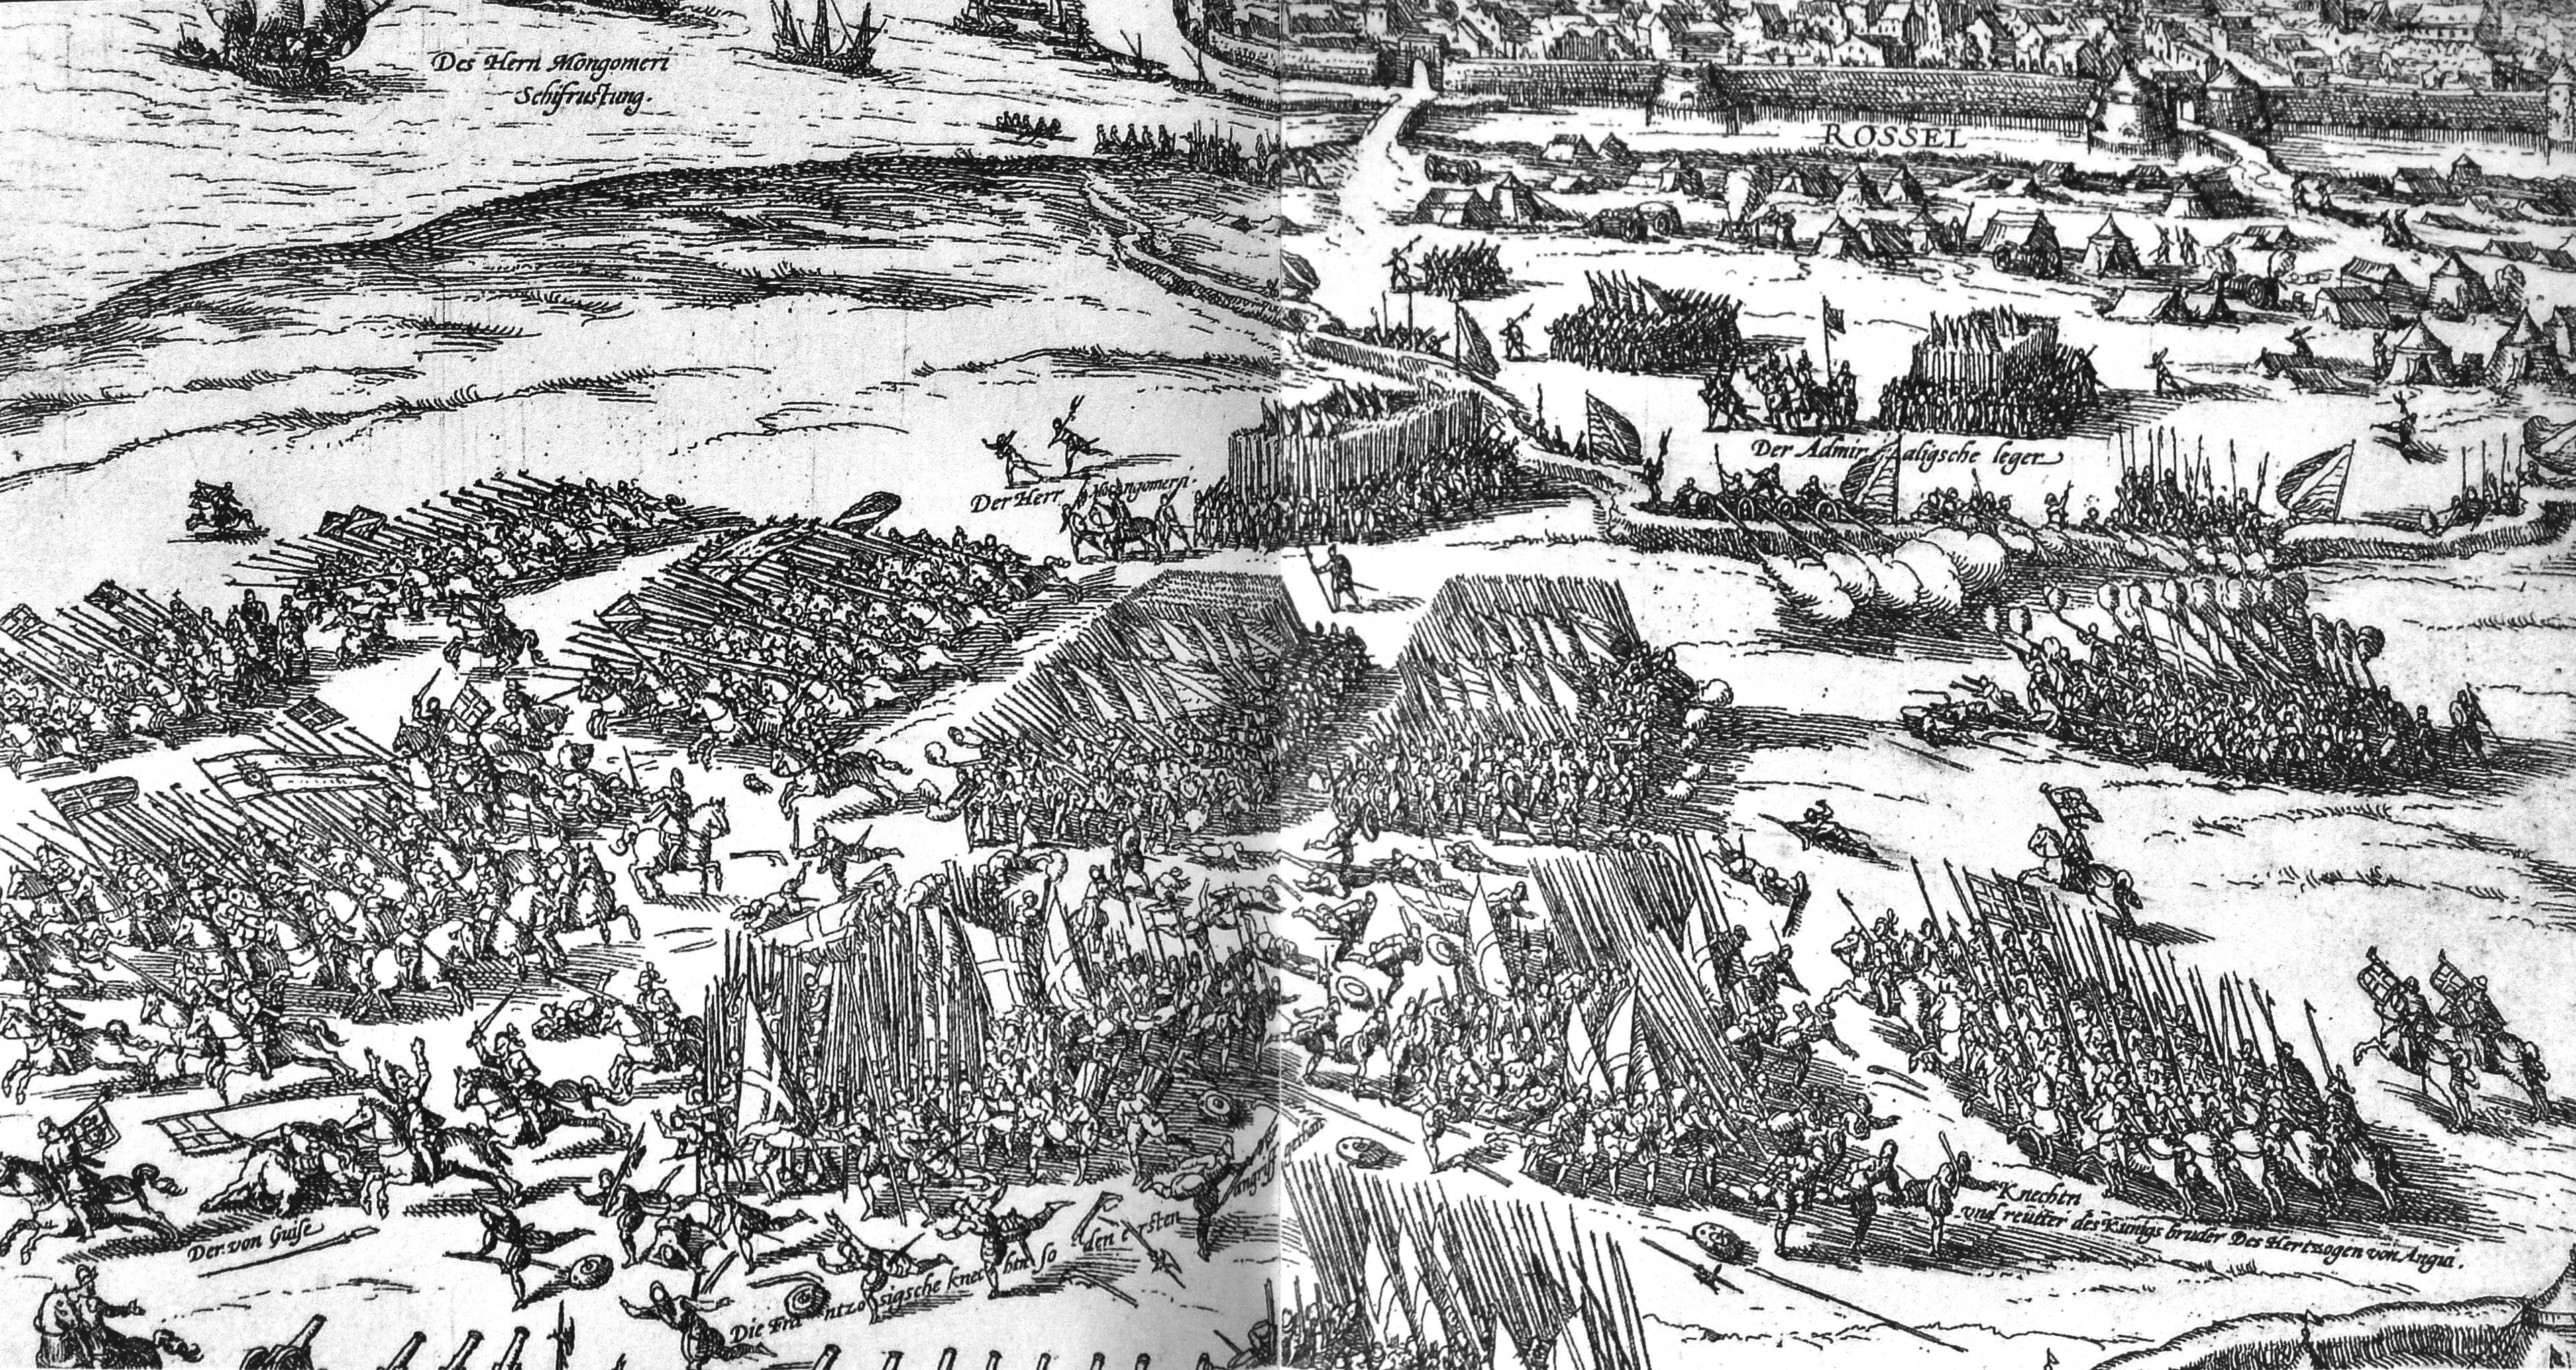 File:Siege of La Rochelle 1572 1573.jpg